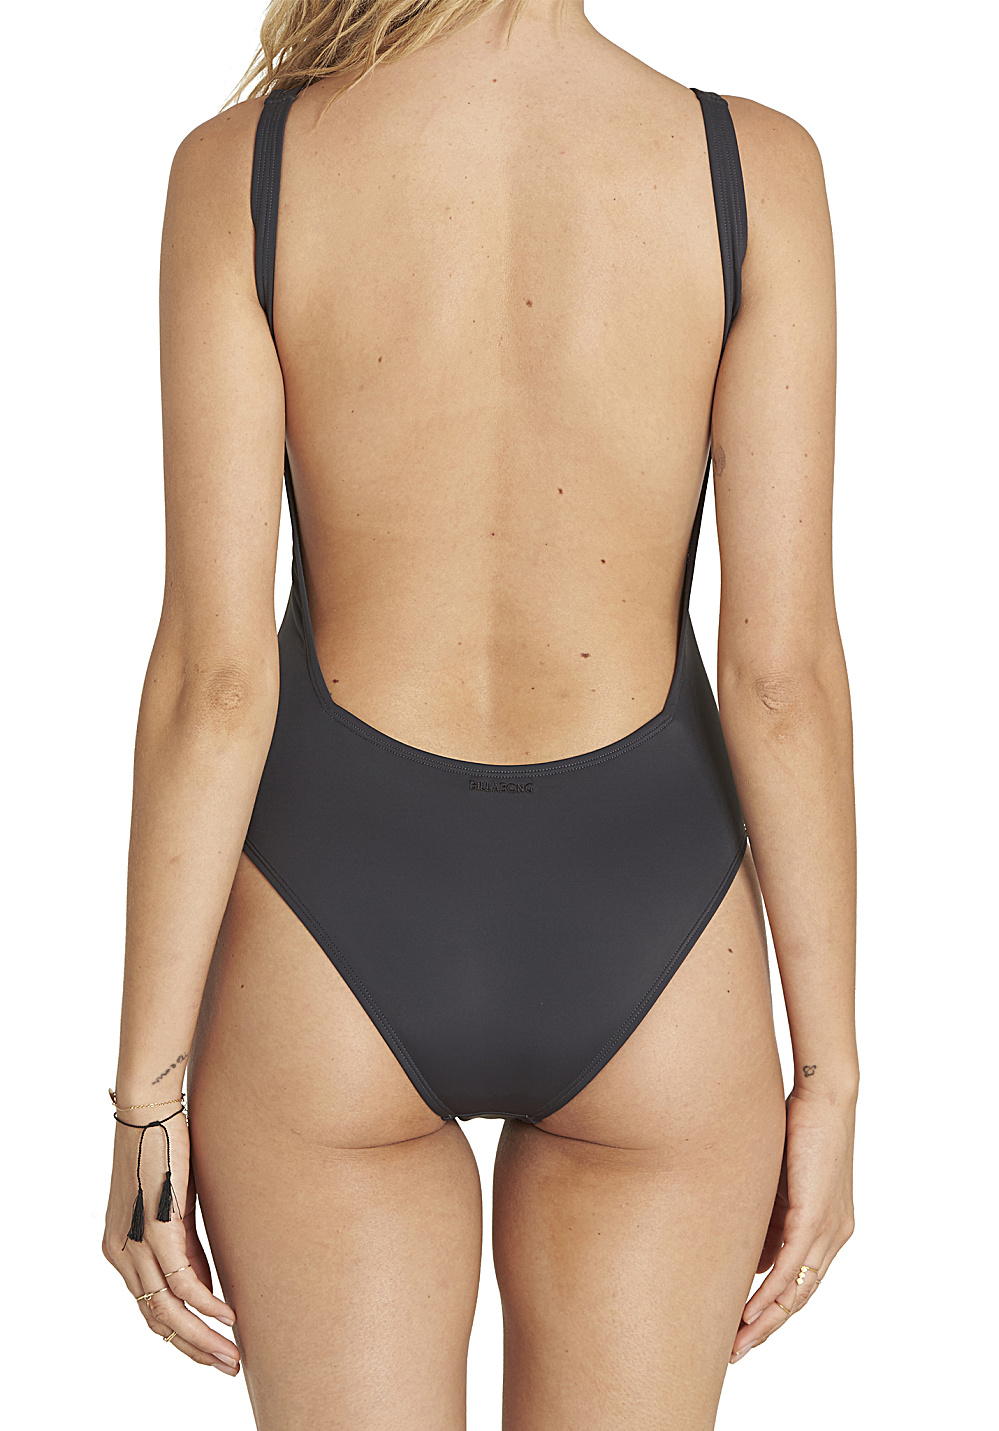 5e2bac1027a BILLABONG Legacy One Piece - One-piece Swimsuit for Women - Black ...